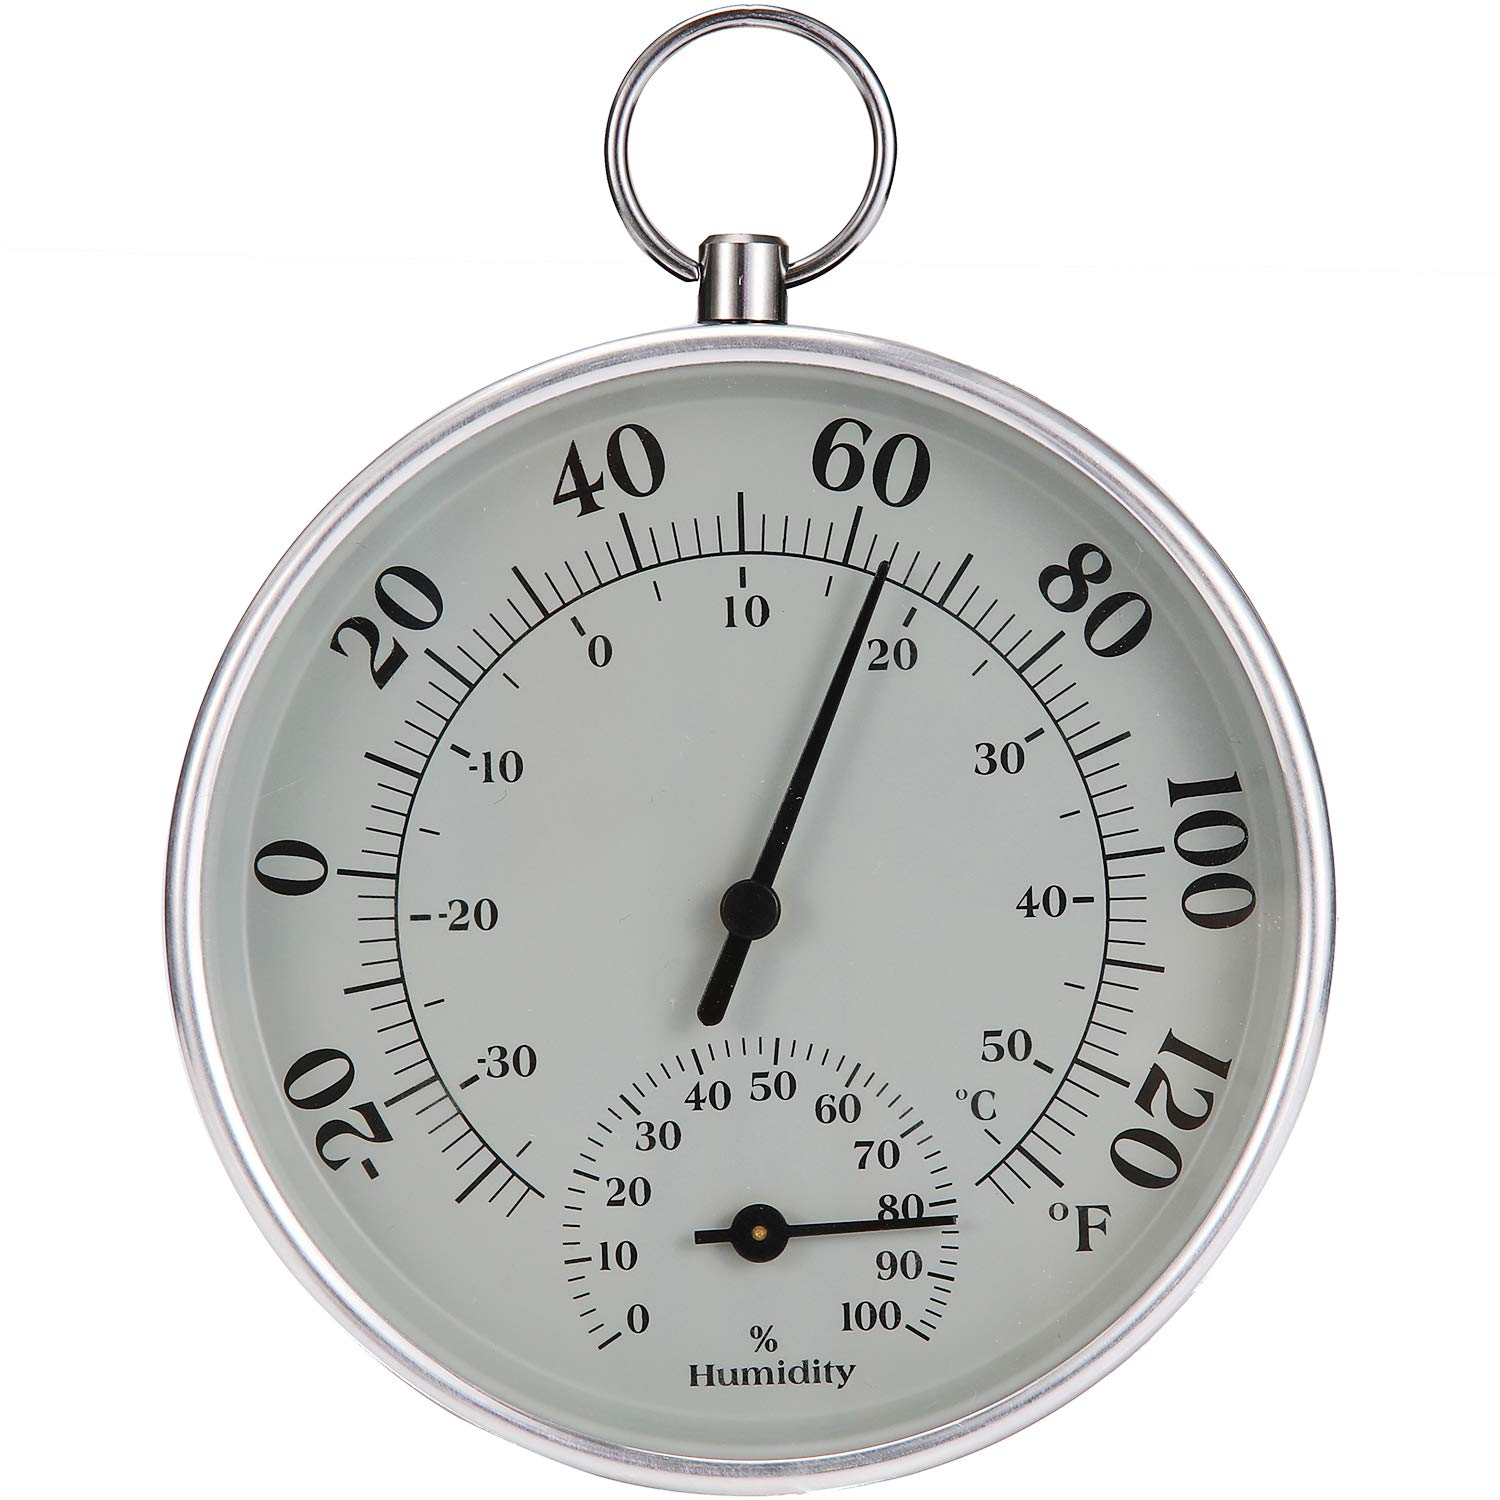 Indoor Outdoor Thermometer Wireless - Weather Round Hygrometer Thermometer, No Battery Required Hanging Hygrometer Watch for Wall, Table, Car, Greenhouse or Decorative, Round 4